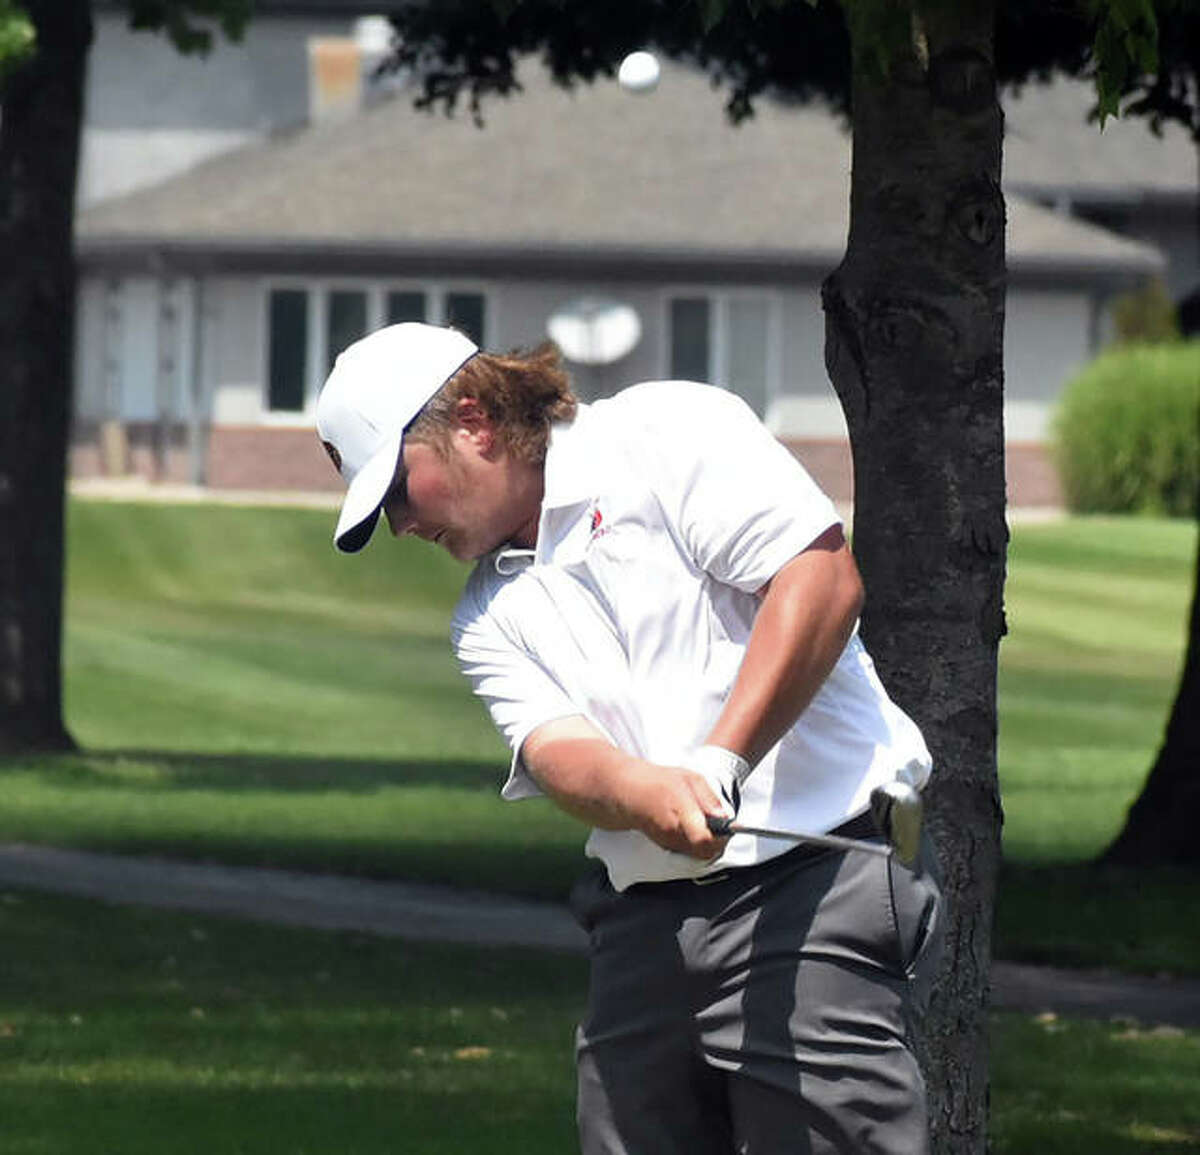 Alton's Alec Schmieder hits a shot during Wednesday's Madison County Meet at Belk Park in Wood River. On Saturday, Schmieder and the Redbirds were at the Quincy Invite and Alton placed ninth at Westview golf course.